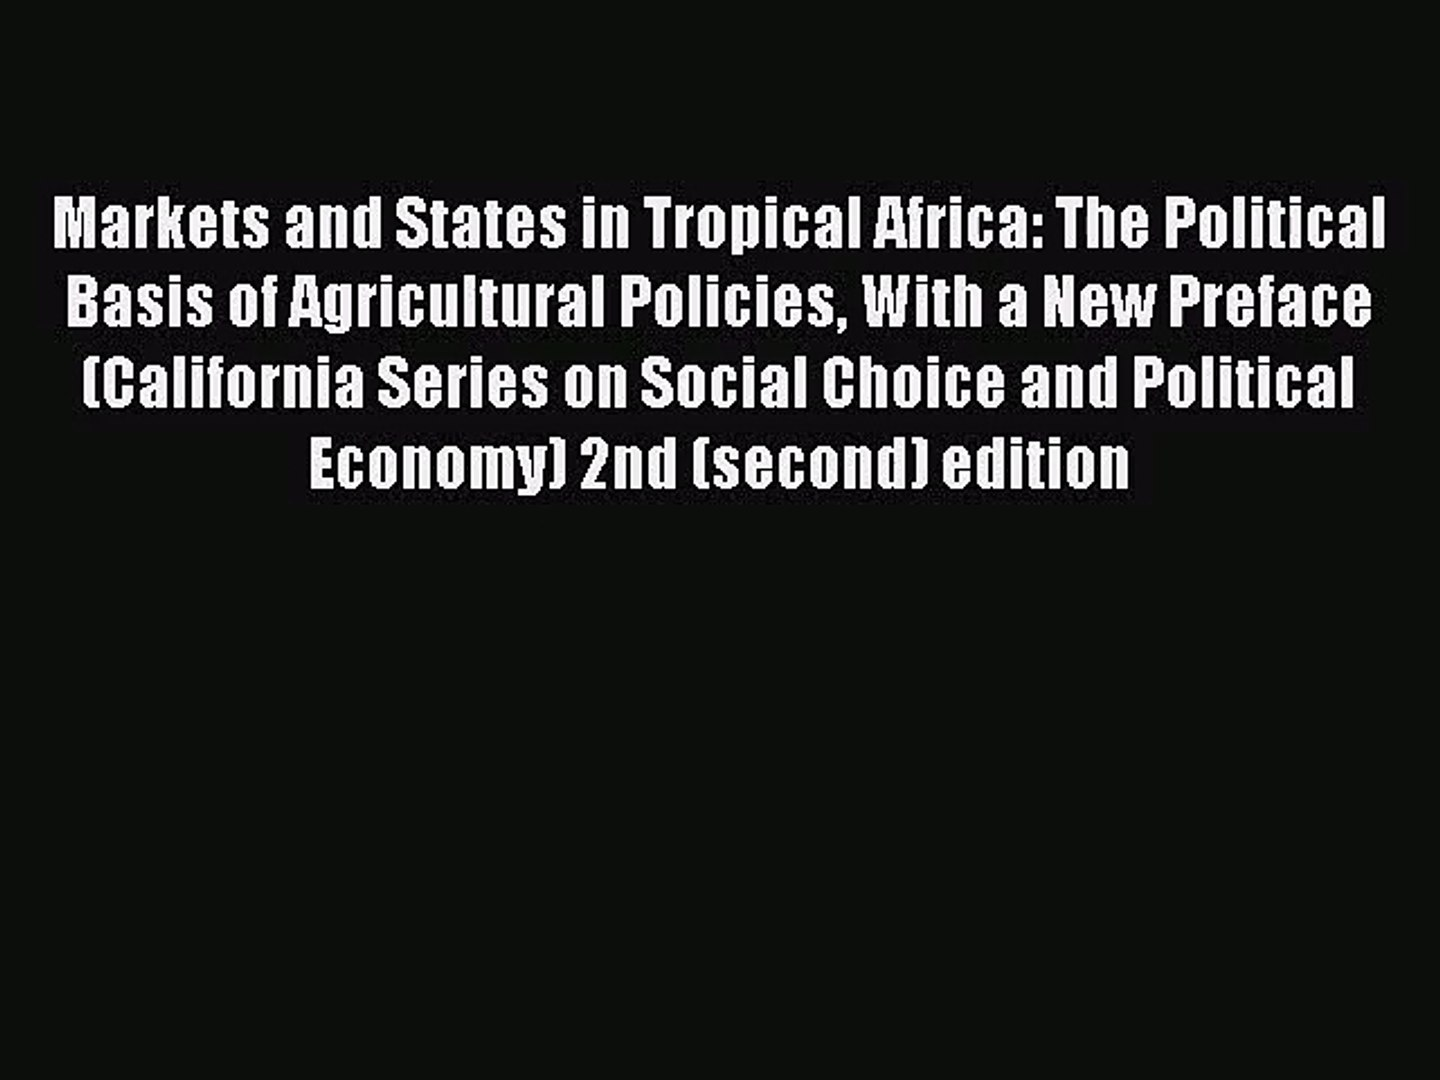 Markets and States in Tropical Africa: The Political Basis of Agricultural Policies With a